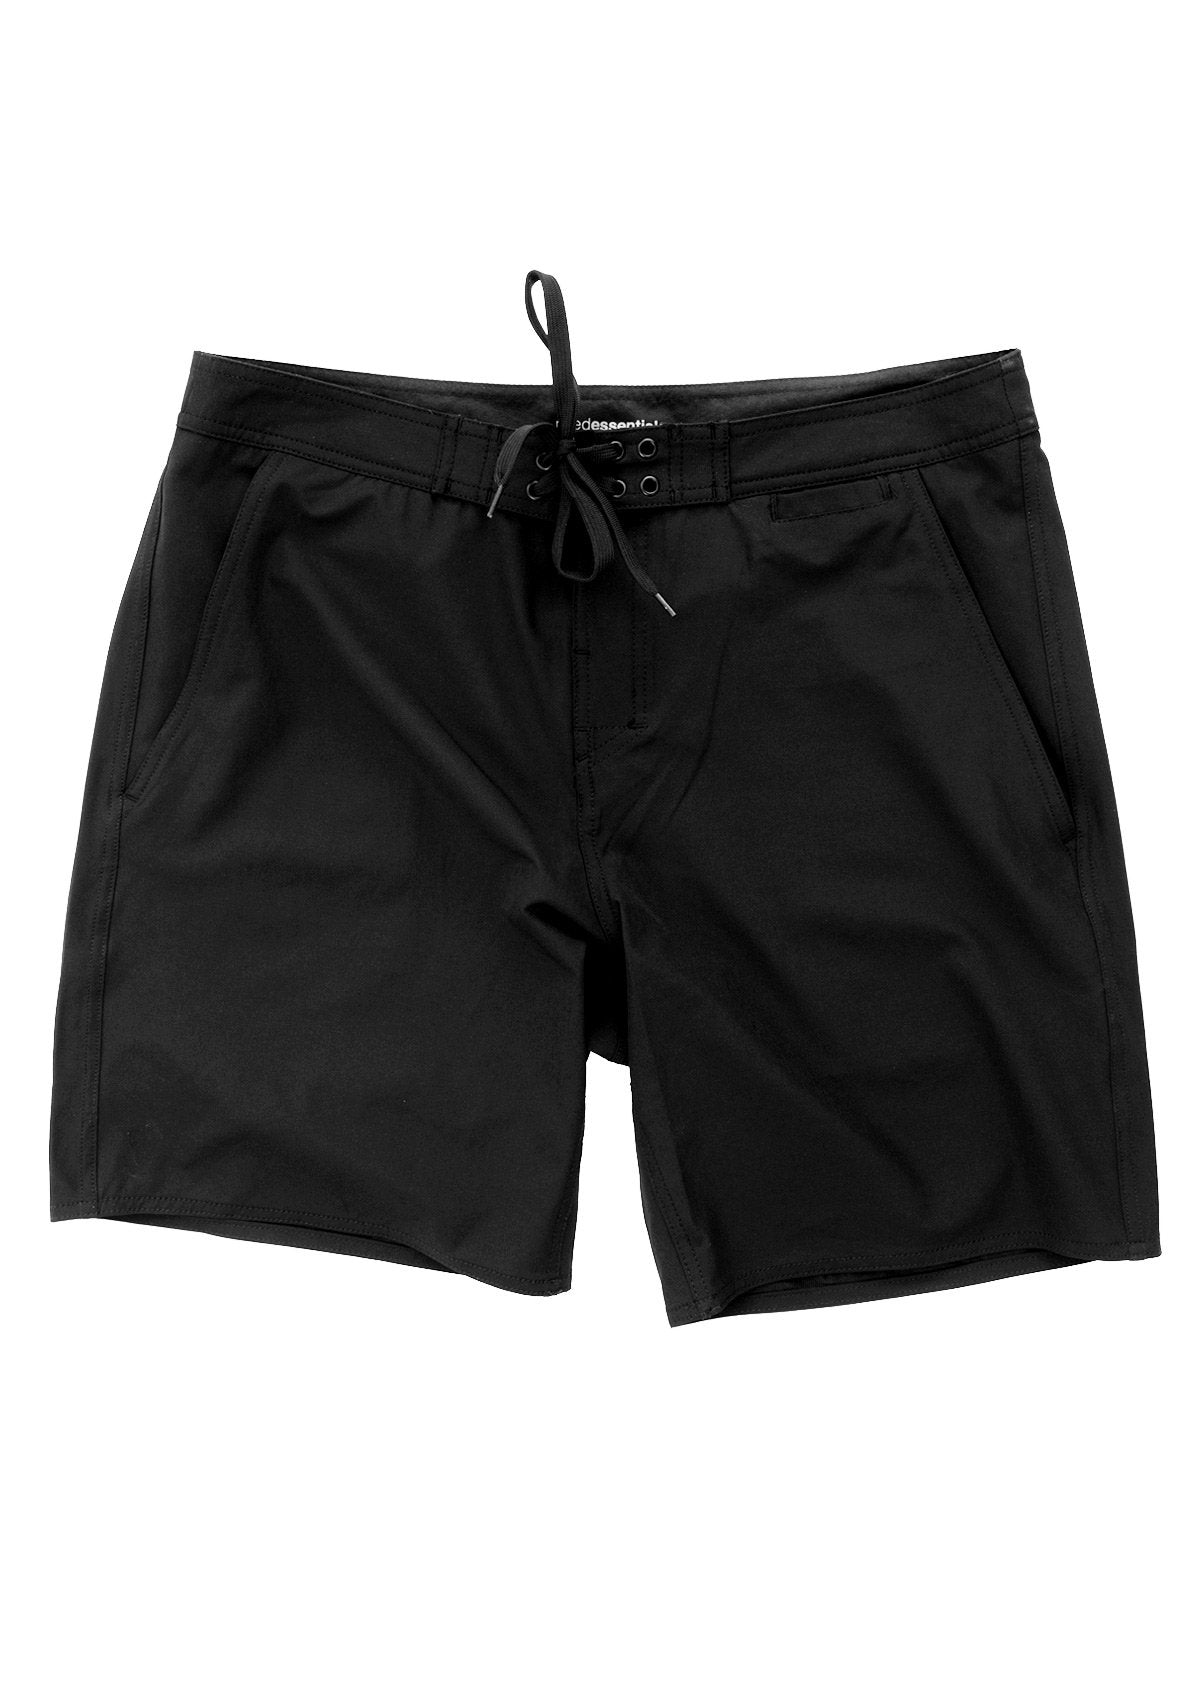 needessentials pocket mens surfing boardshorts non branded black